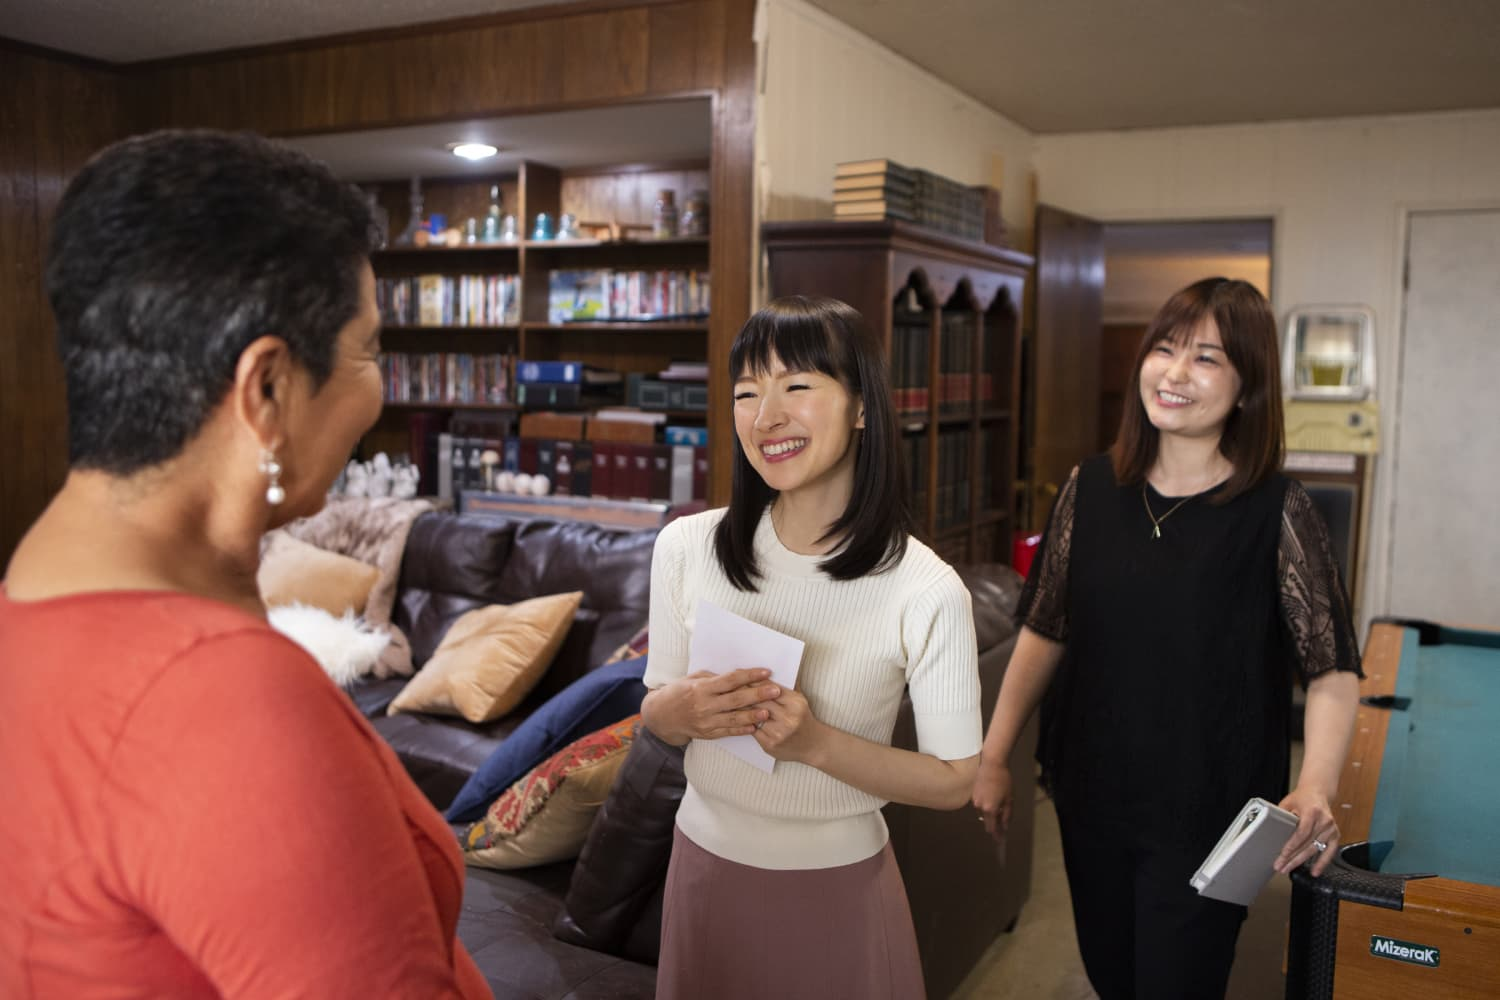 5 Things I Missed the First Time I Watched 'Tidying Up with Marie Kondo'